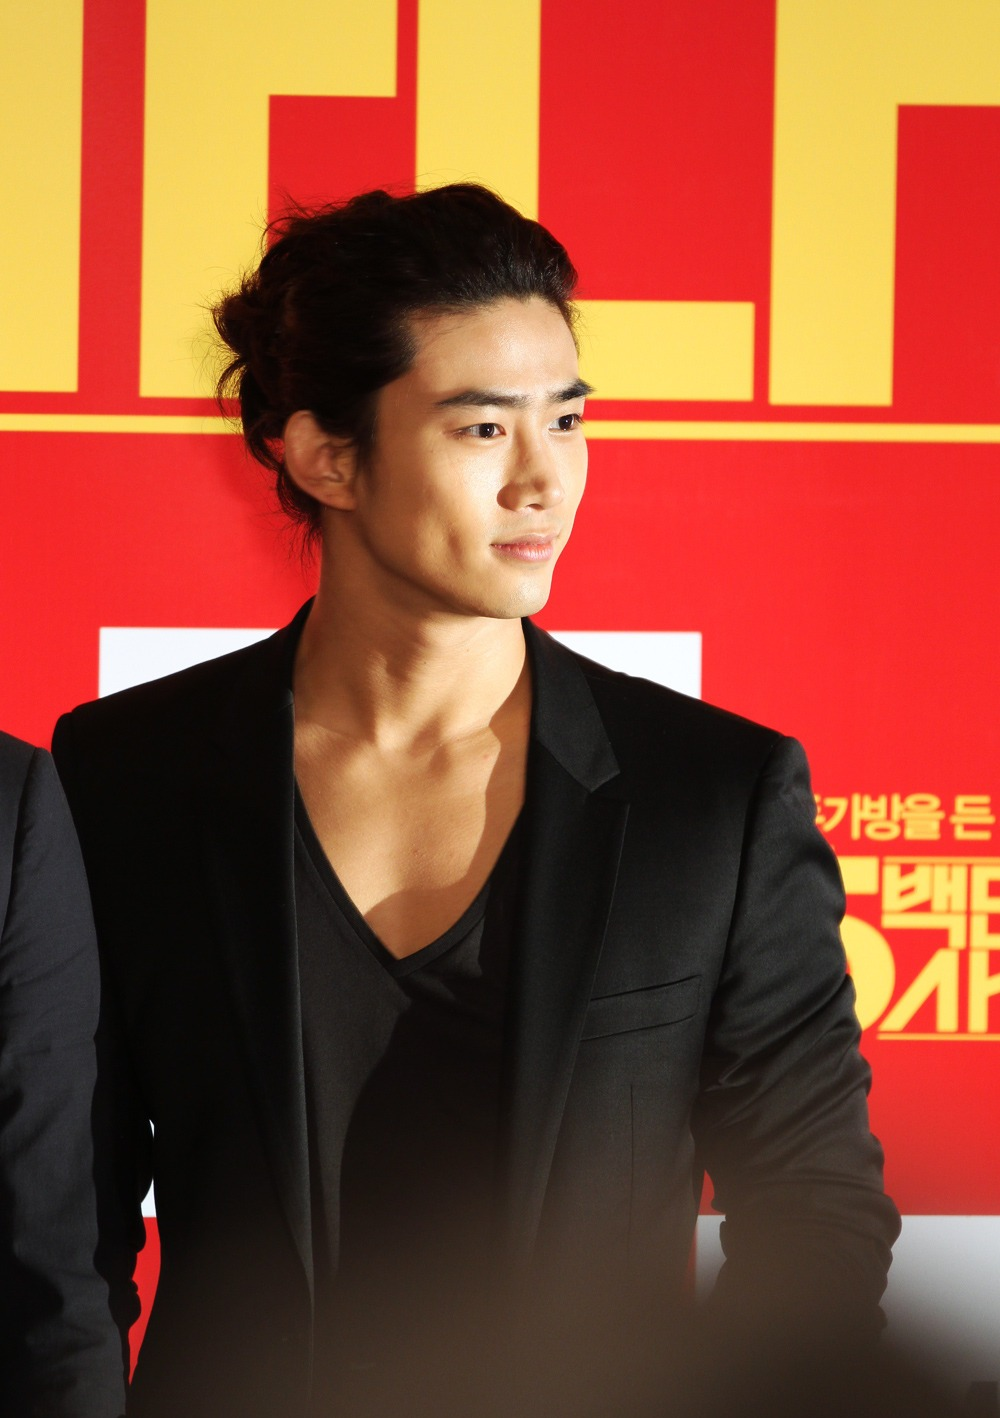 Korean Hairstyles Taecyeon 2pm Korean Hairstyles